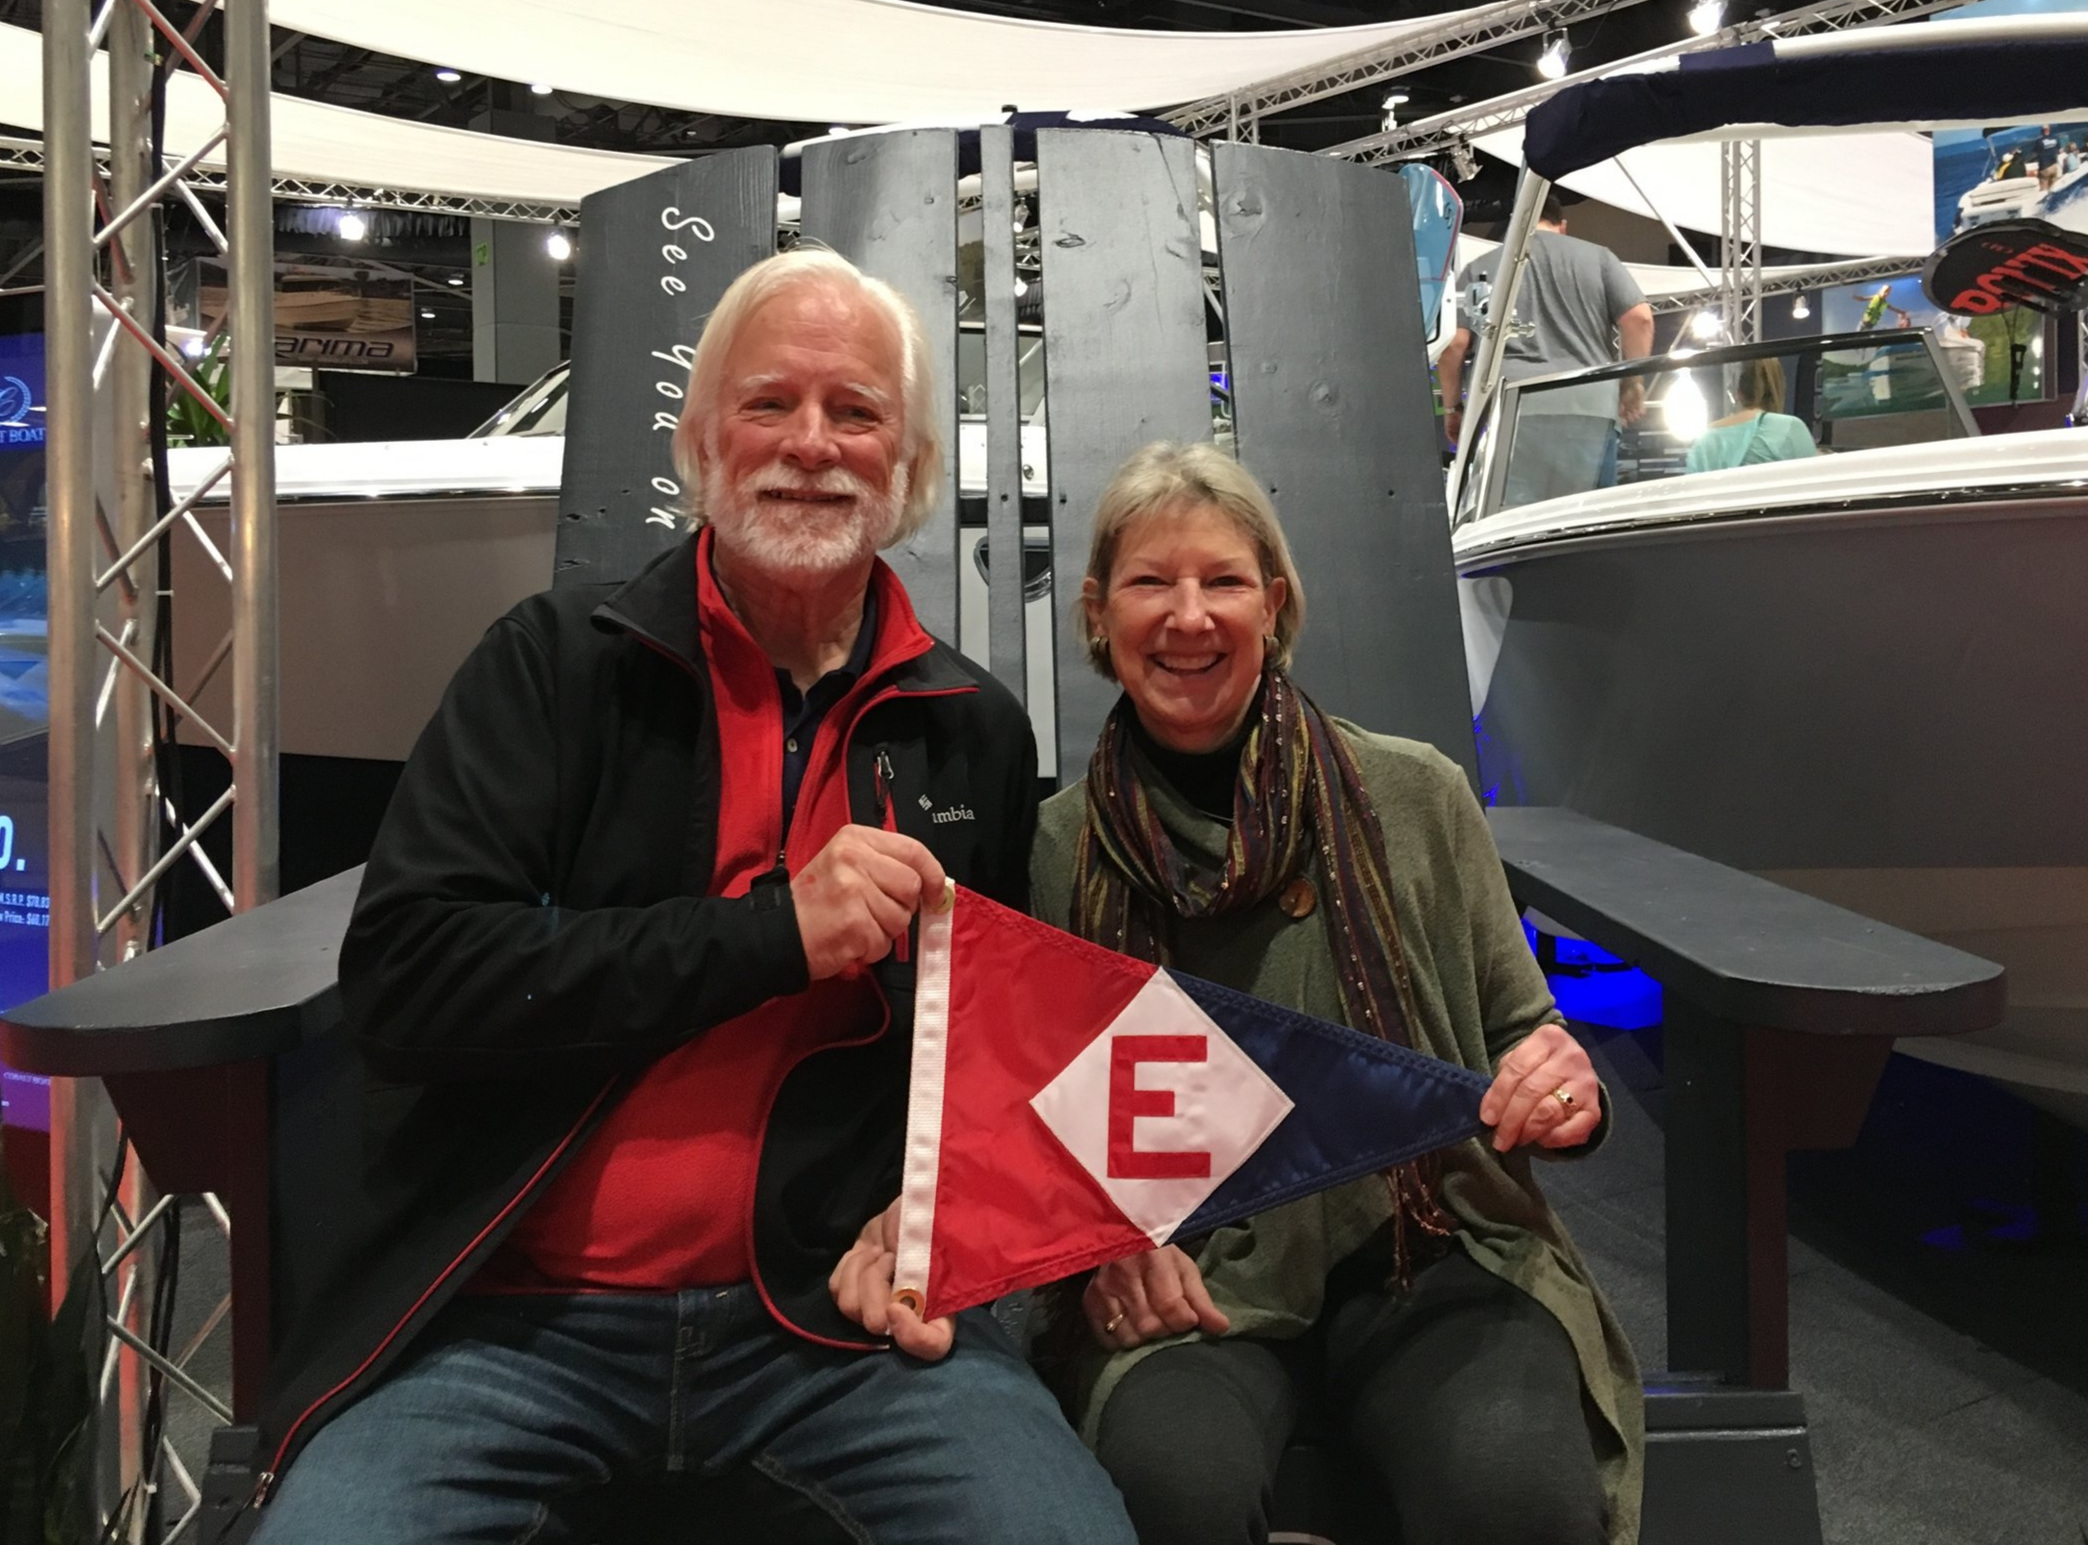 Ken & Chris Emmes at the Seattle Boat Show